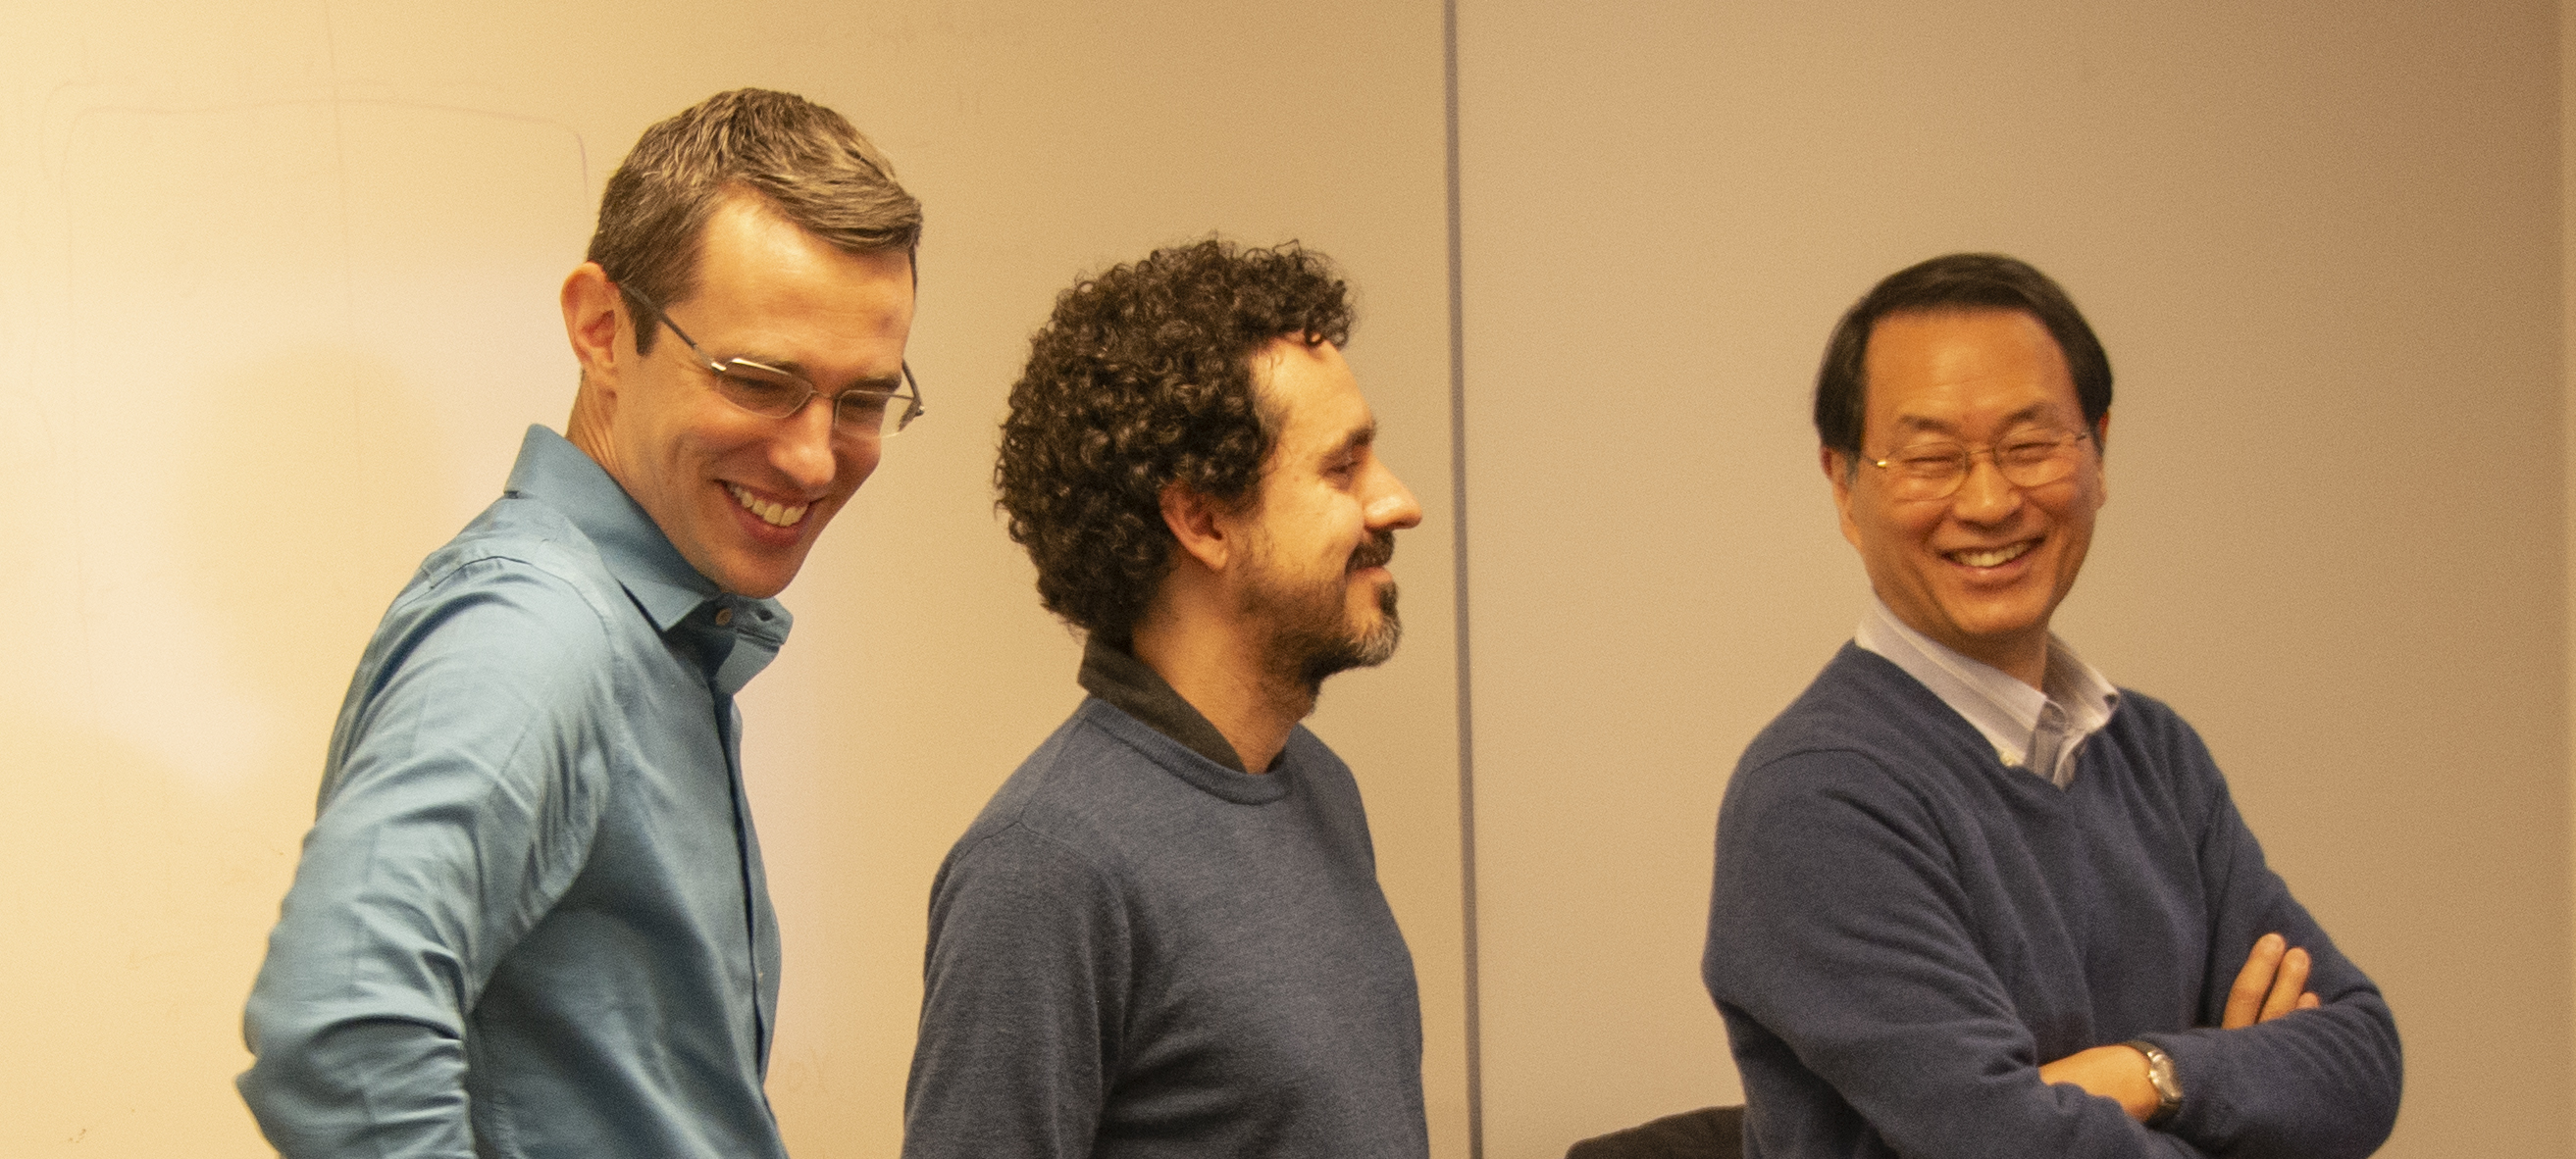 Two faculty and a student have a chuckle in a laboratory.